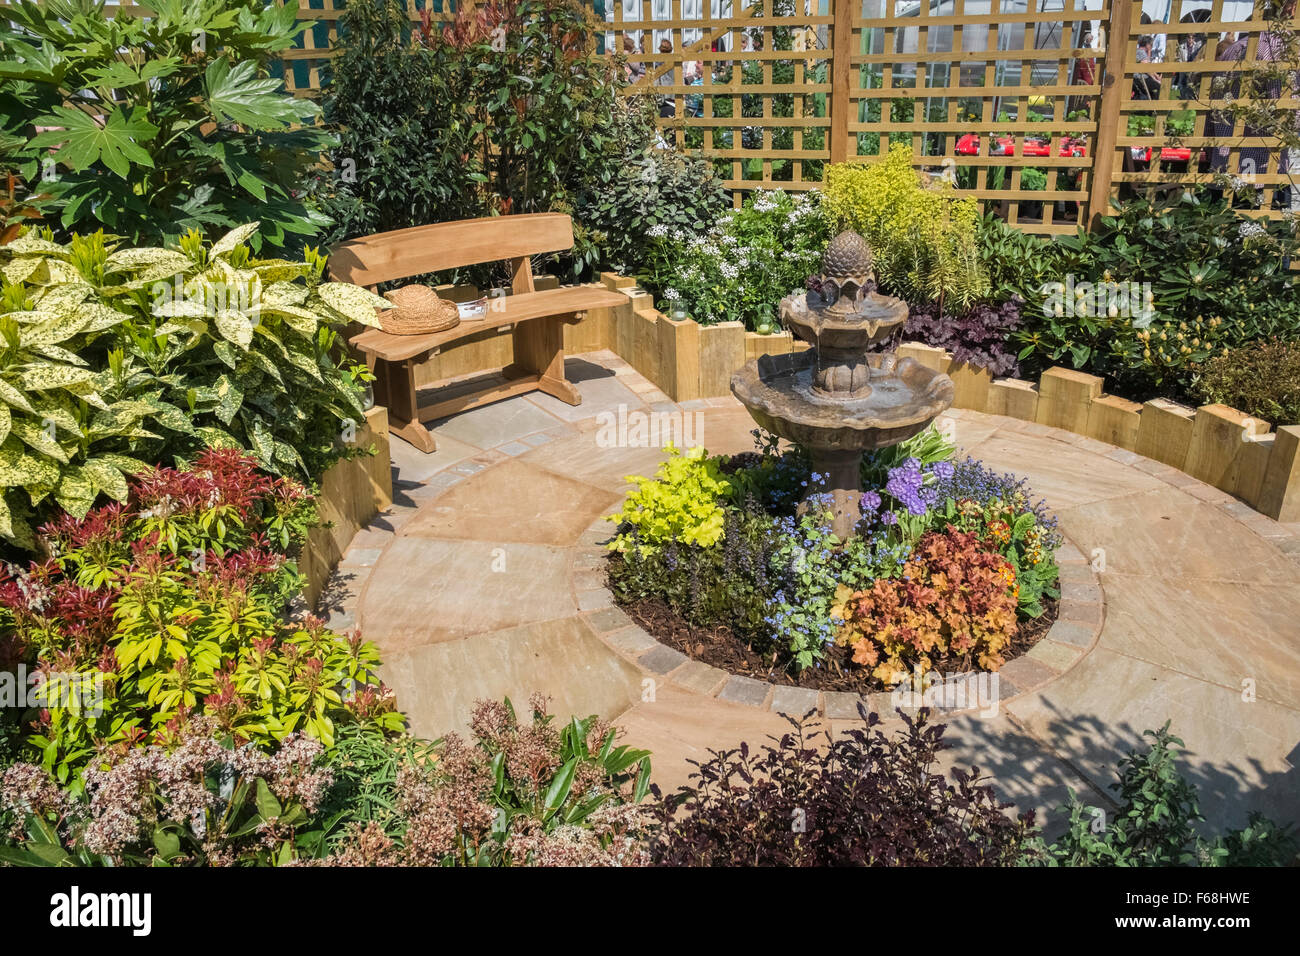 Garden with seating area designed for a small space stock for Garden seating areas